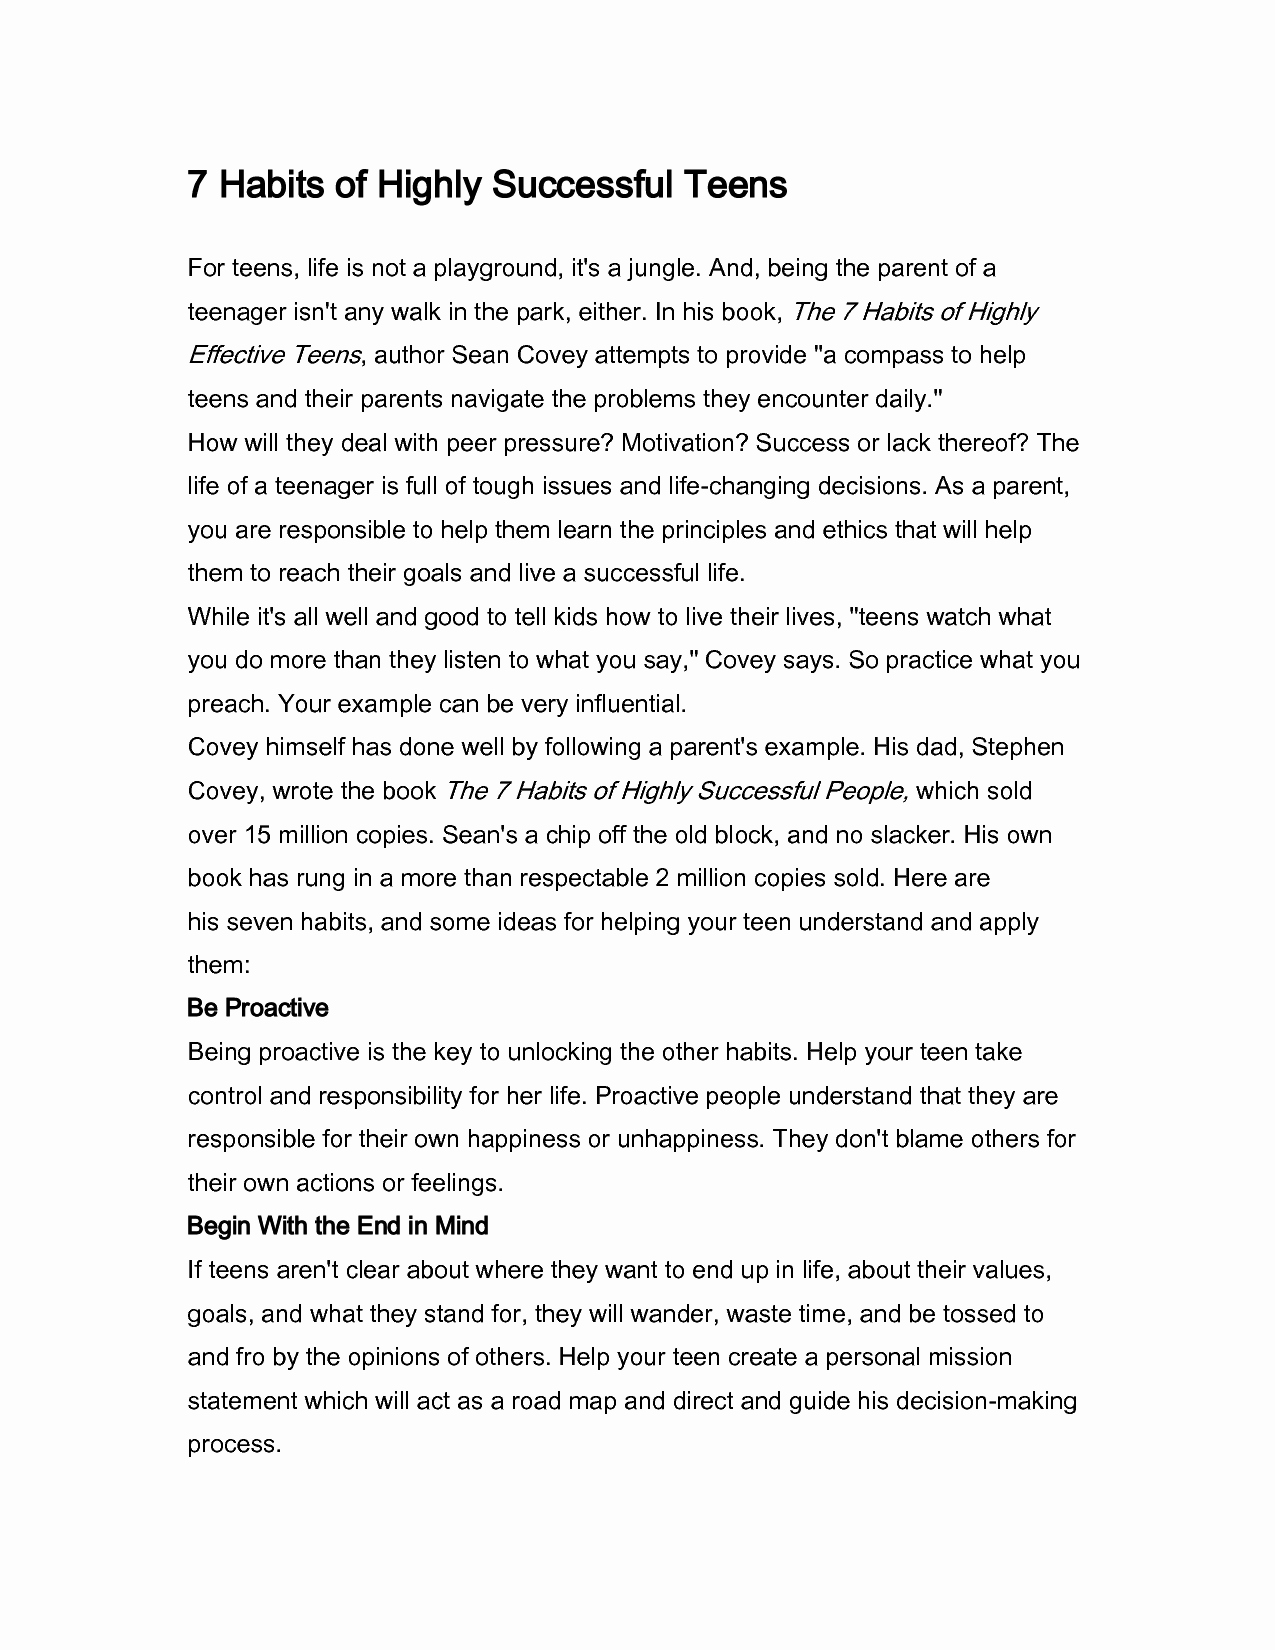 Personal Mission Statement Worksheet Luxury Worksheet 7 Habits Highly Effective Teens Worksheets